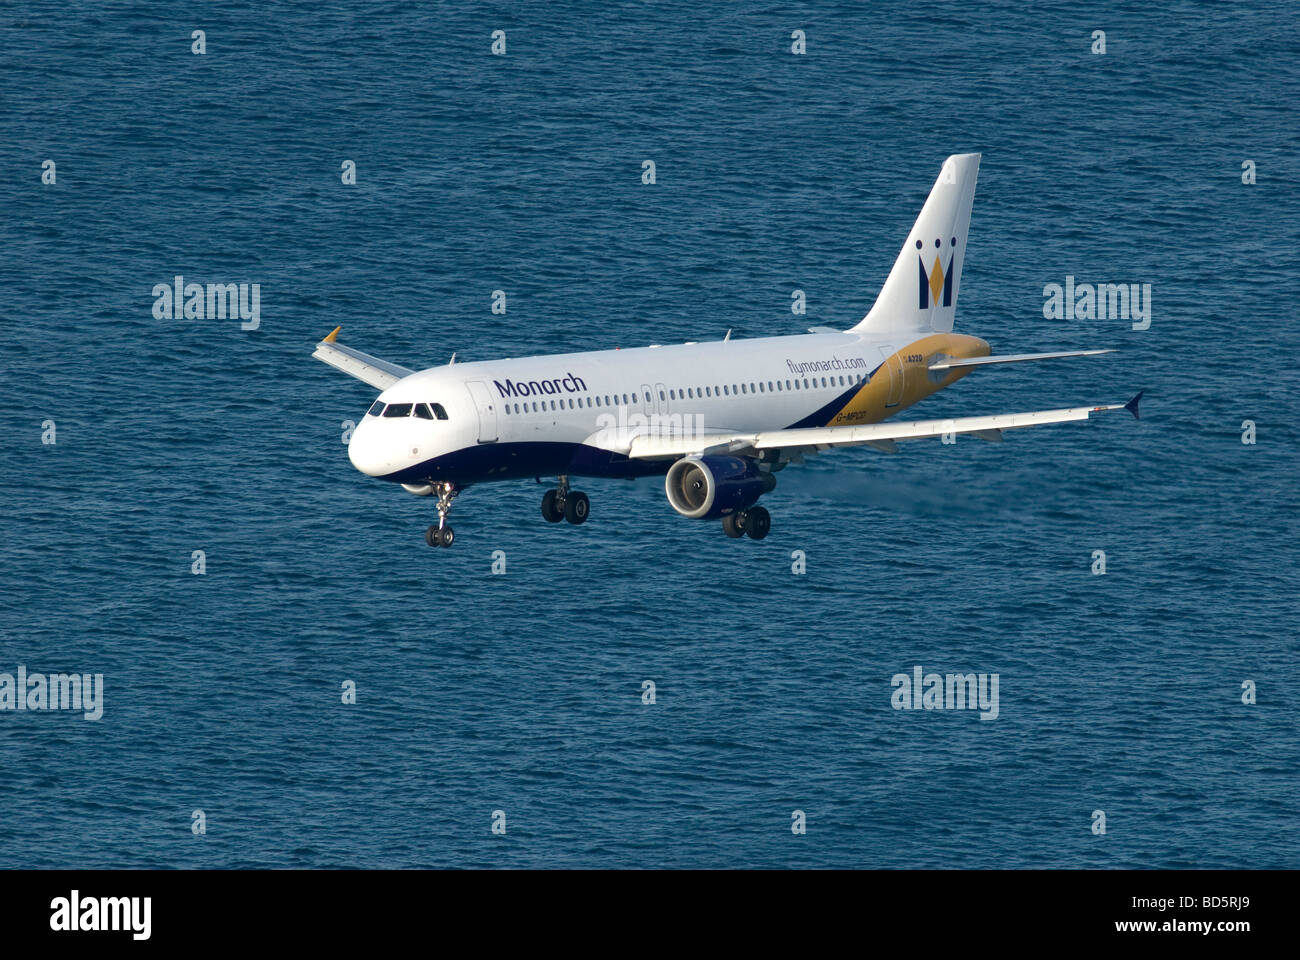 Monarch airlines jet on final approach to Gibraltar over Mediterranean sea - Stock Image